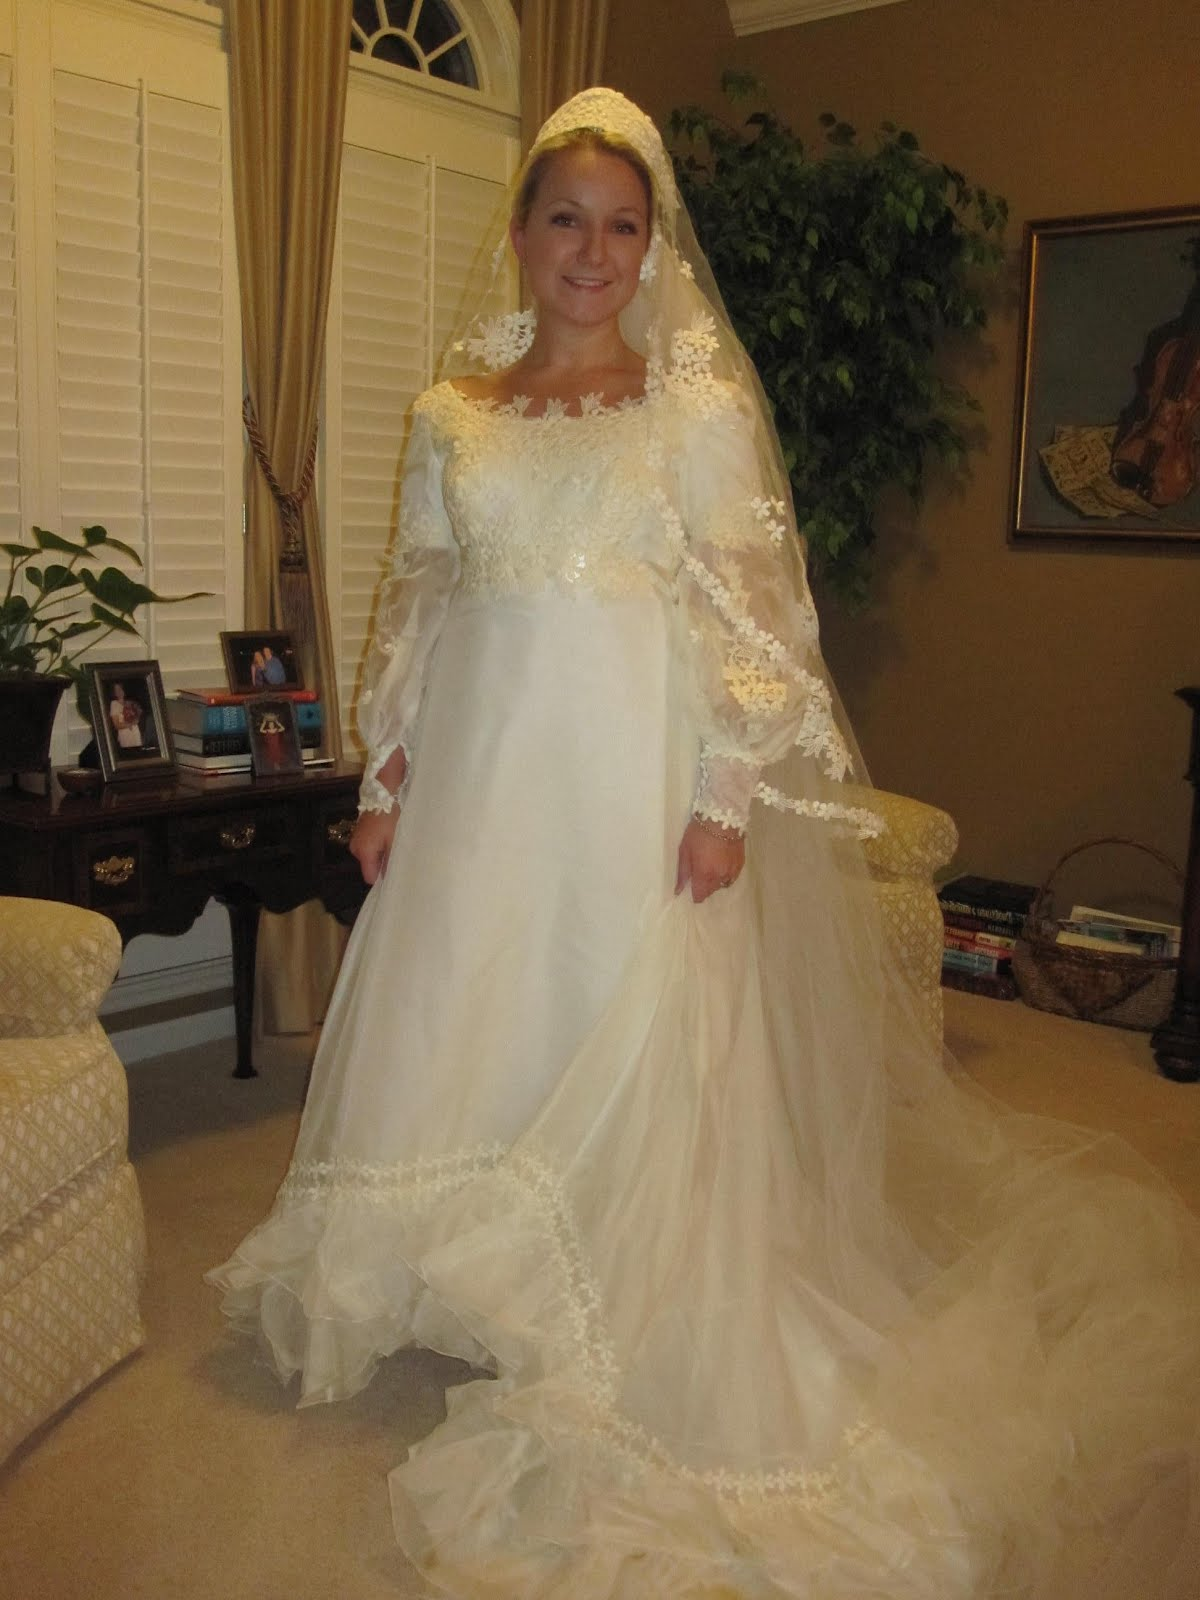 my mothers wedding dress mothers wedding dresses So since the dress was not going to work as my wedding dress I decided to wear my mom s veil on my wedding However it had a cap like crown that didn t